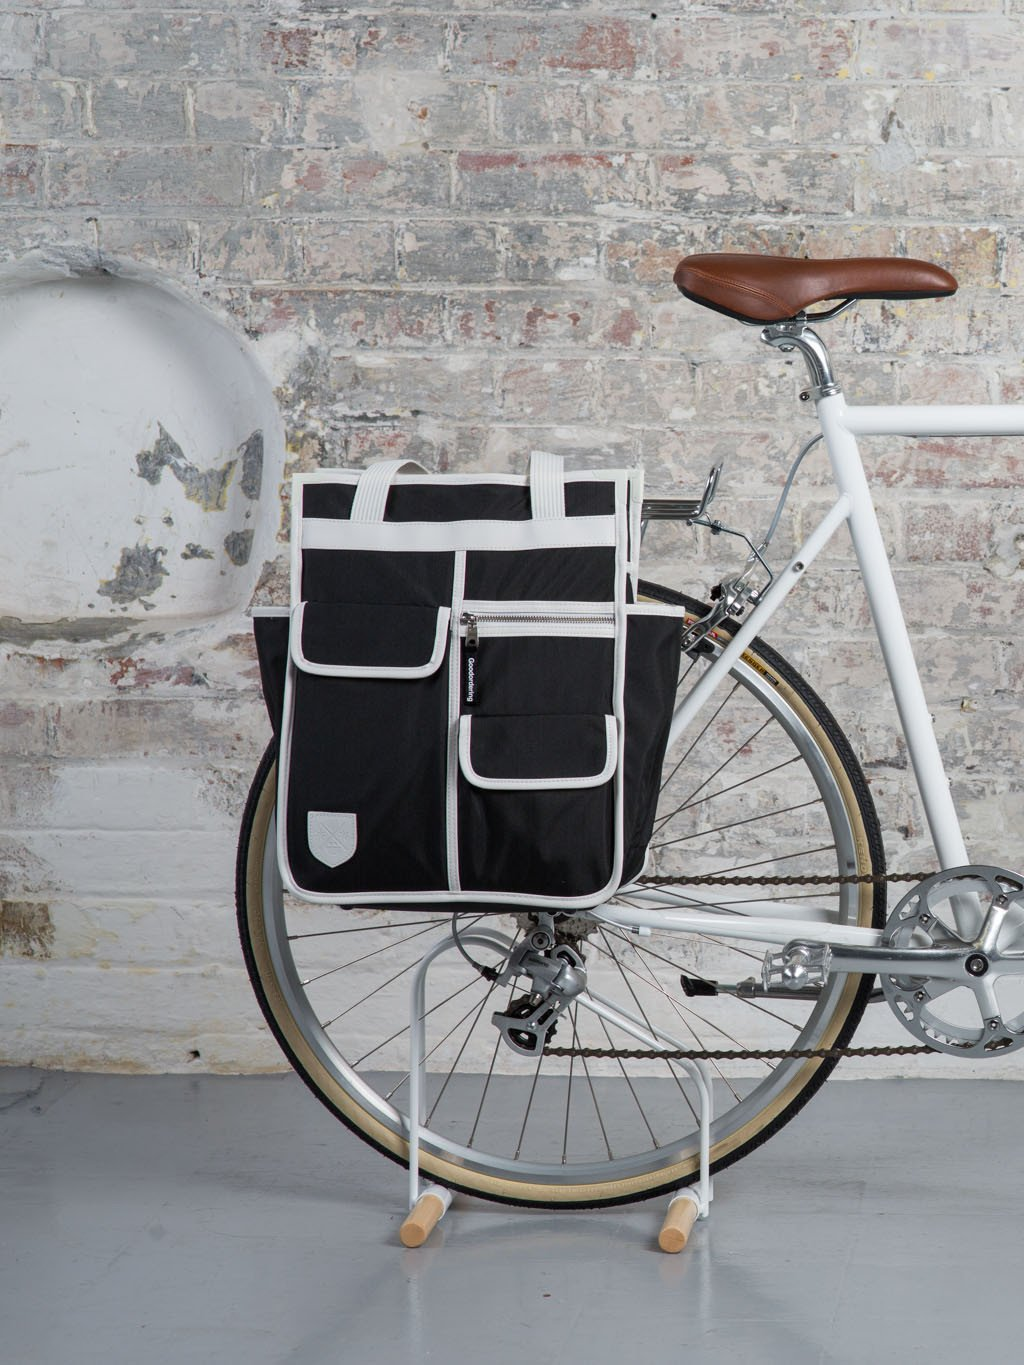 3 in 1 Market Shopper: Convertible Backpack Pannier cycling bag